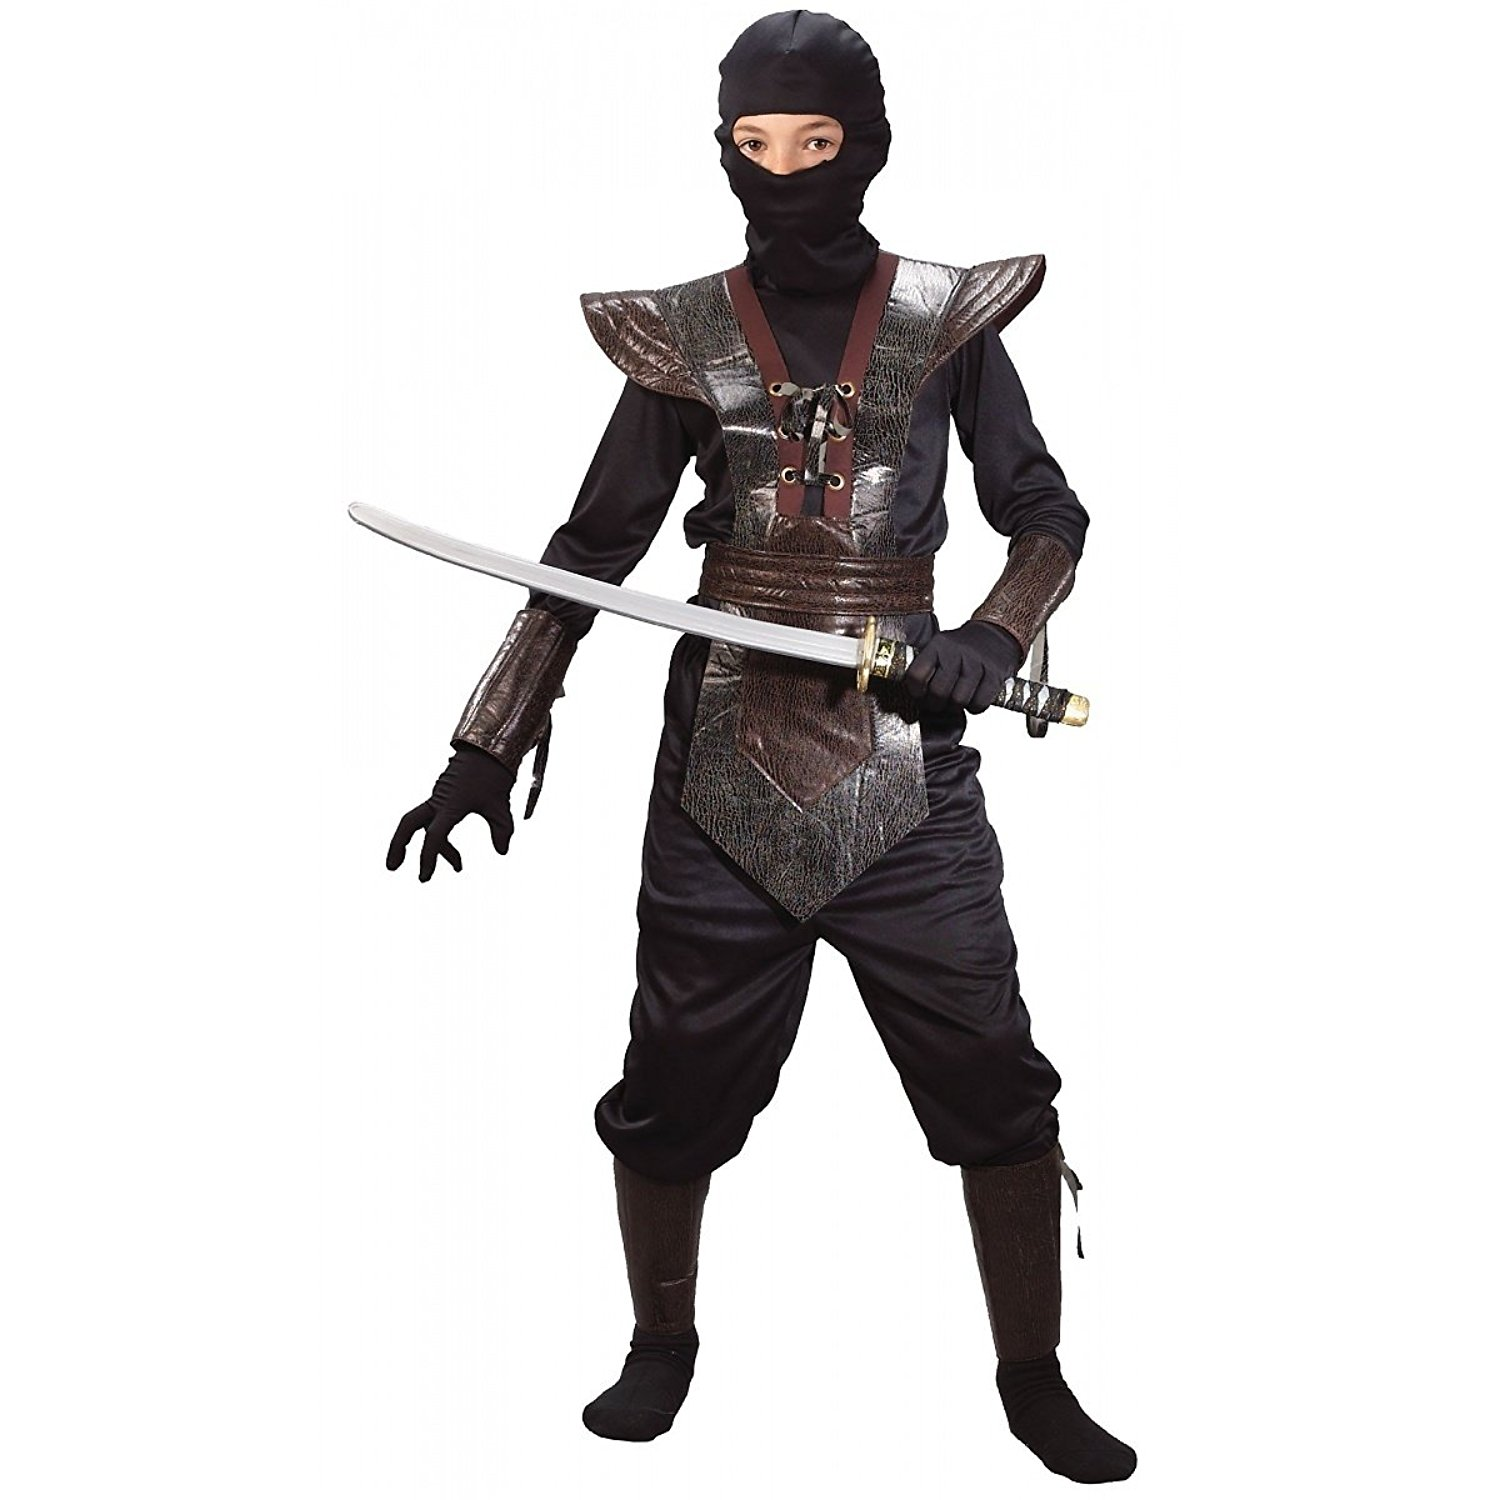 Leather Ninja Fighter Costume (Boy's Children's Costume)